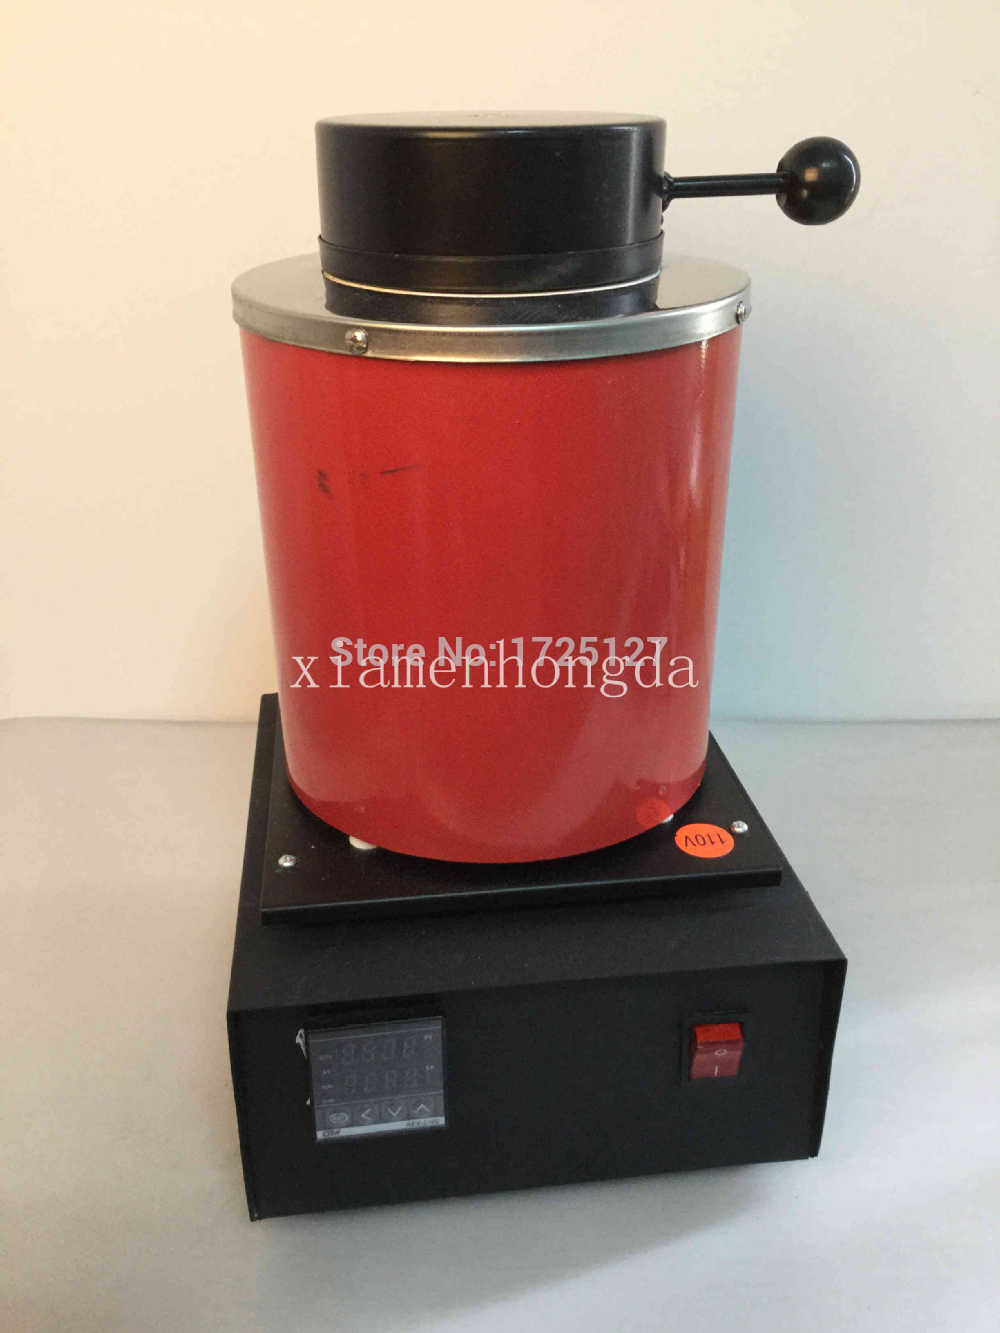 FREE SHIPPING 220 VOLTAGE AND 2KG CAPACITY GOLD ELECTRIC MELTING FURNACES WITH 1PC GRAPHITE CRUCIBLE & PLIER, MELTING FURNACE